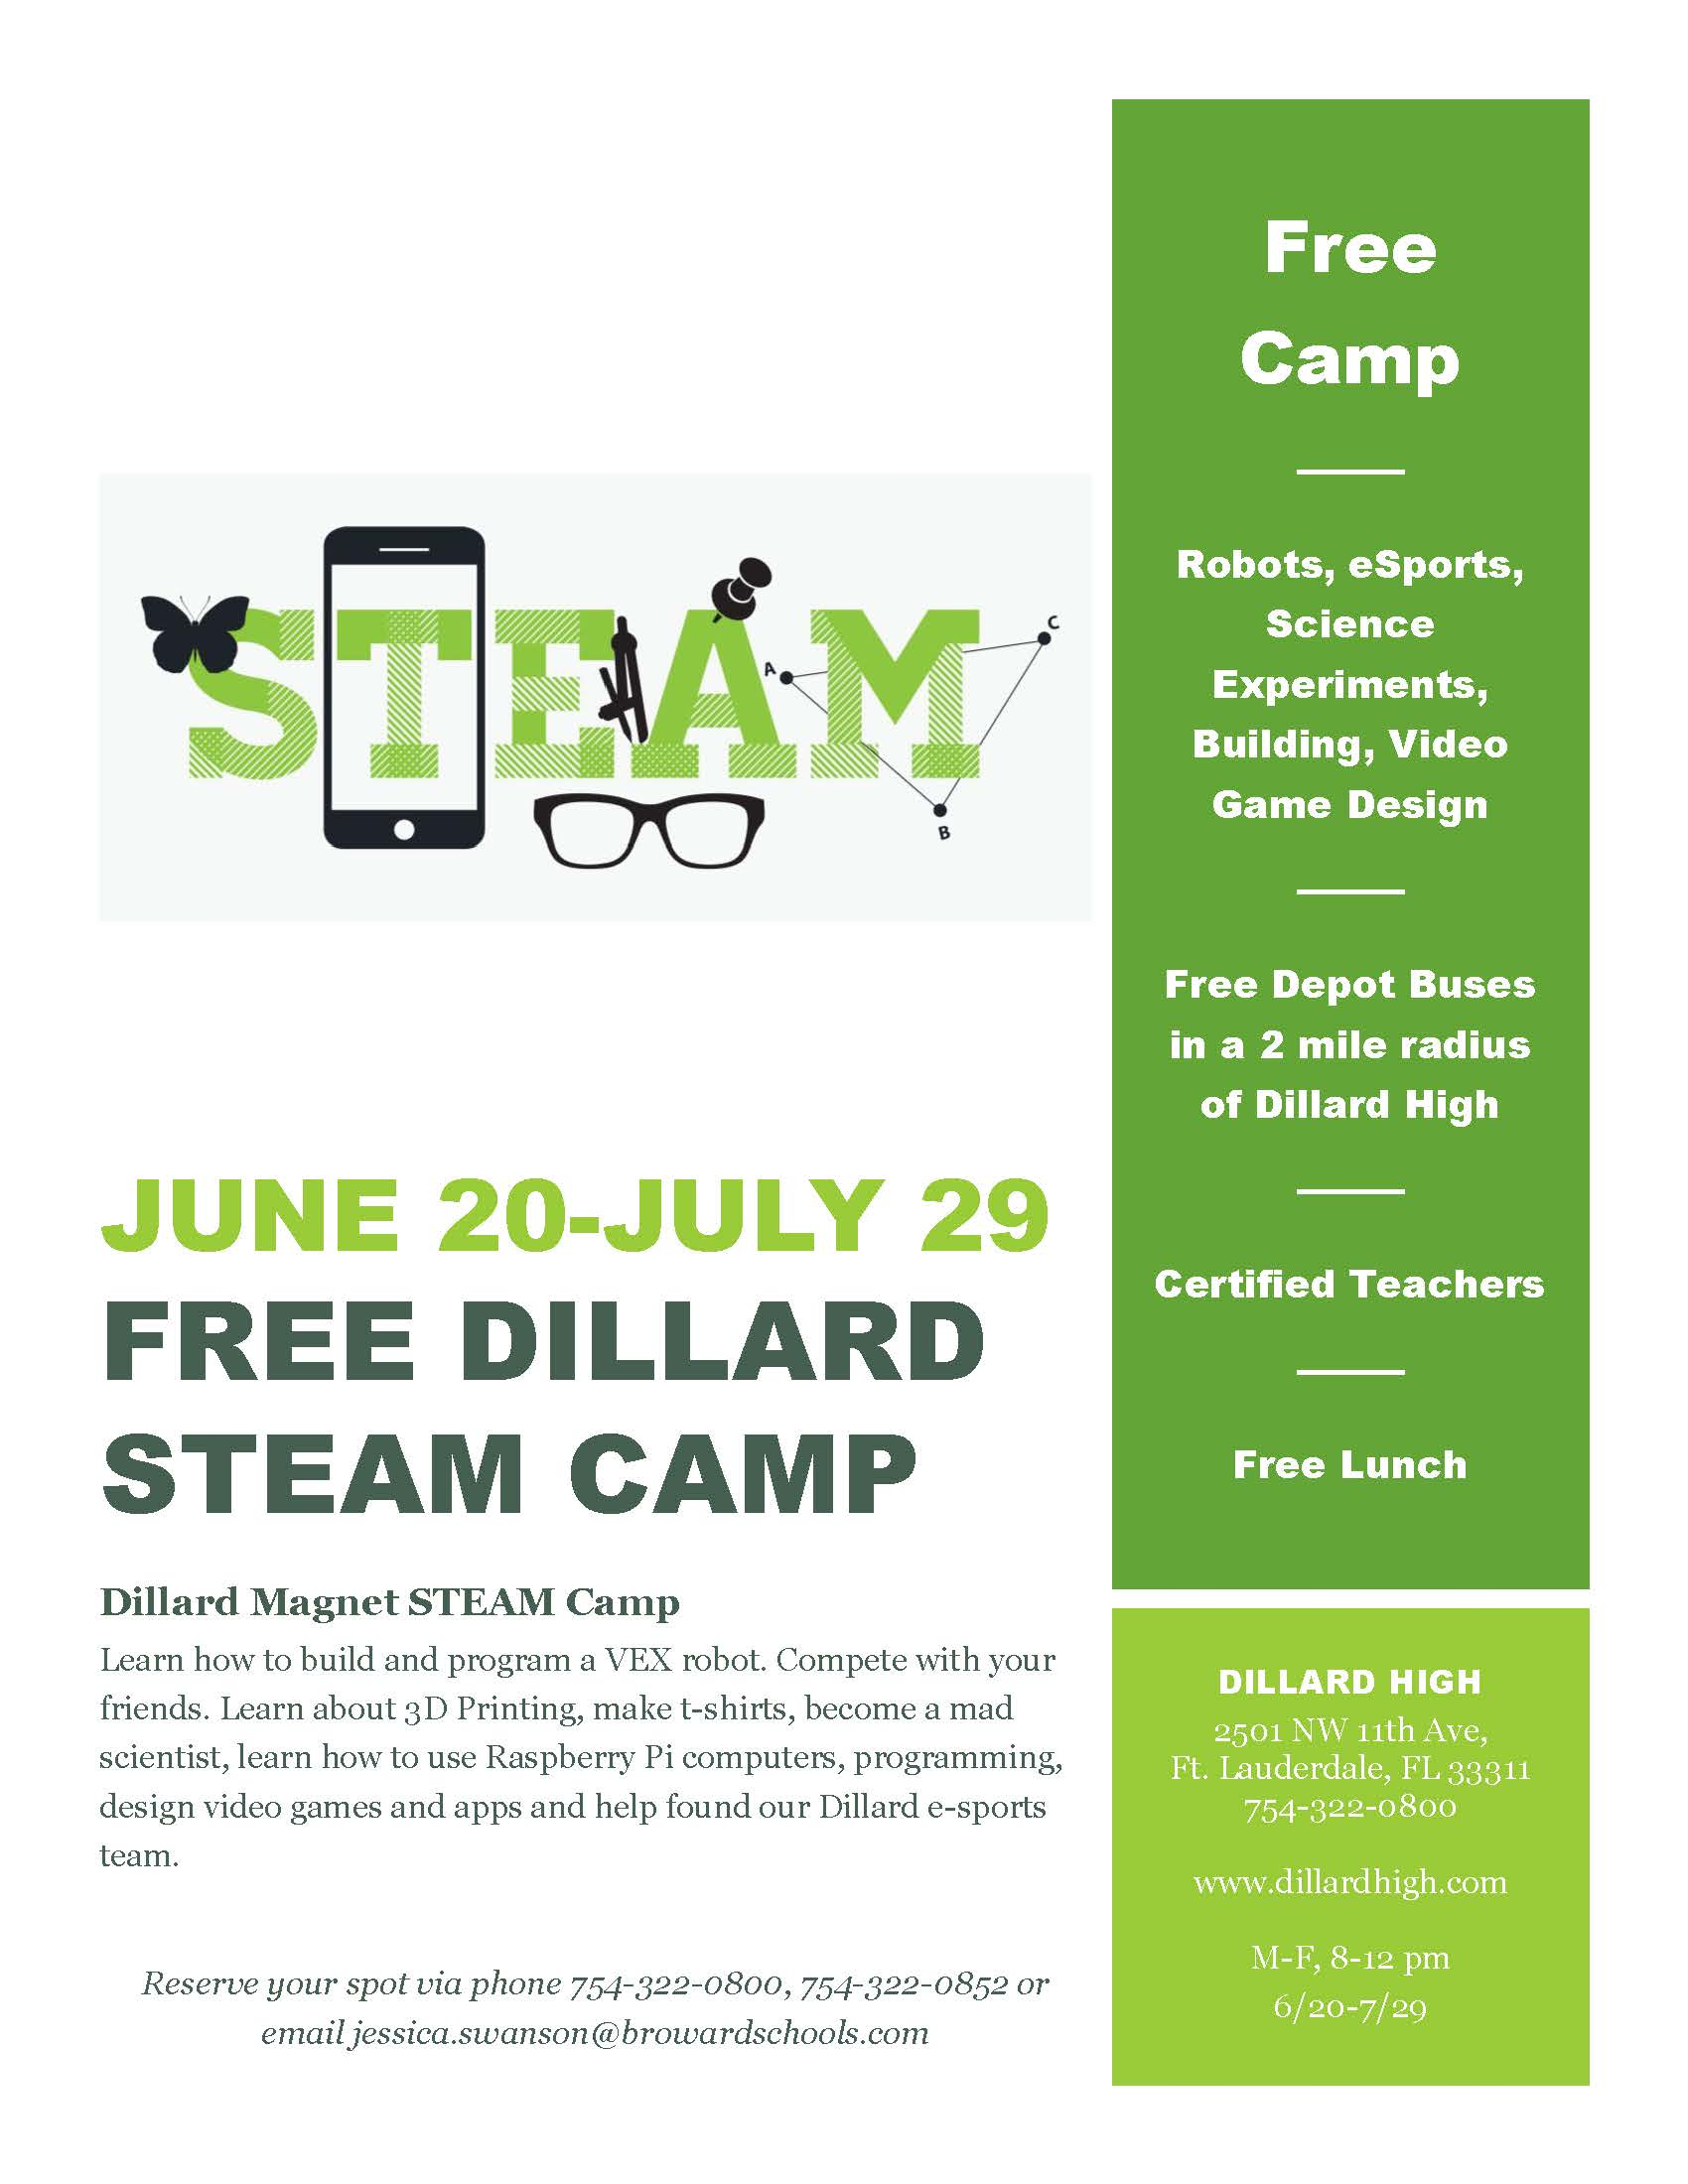 STEAM Camp 2016